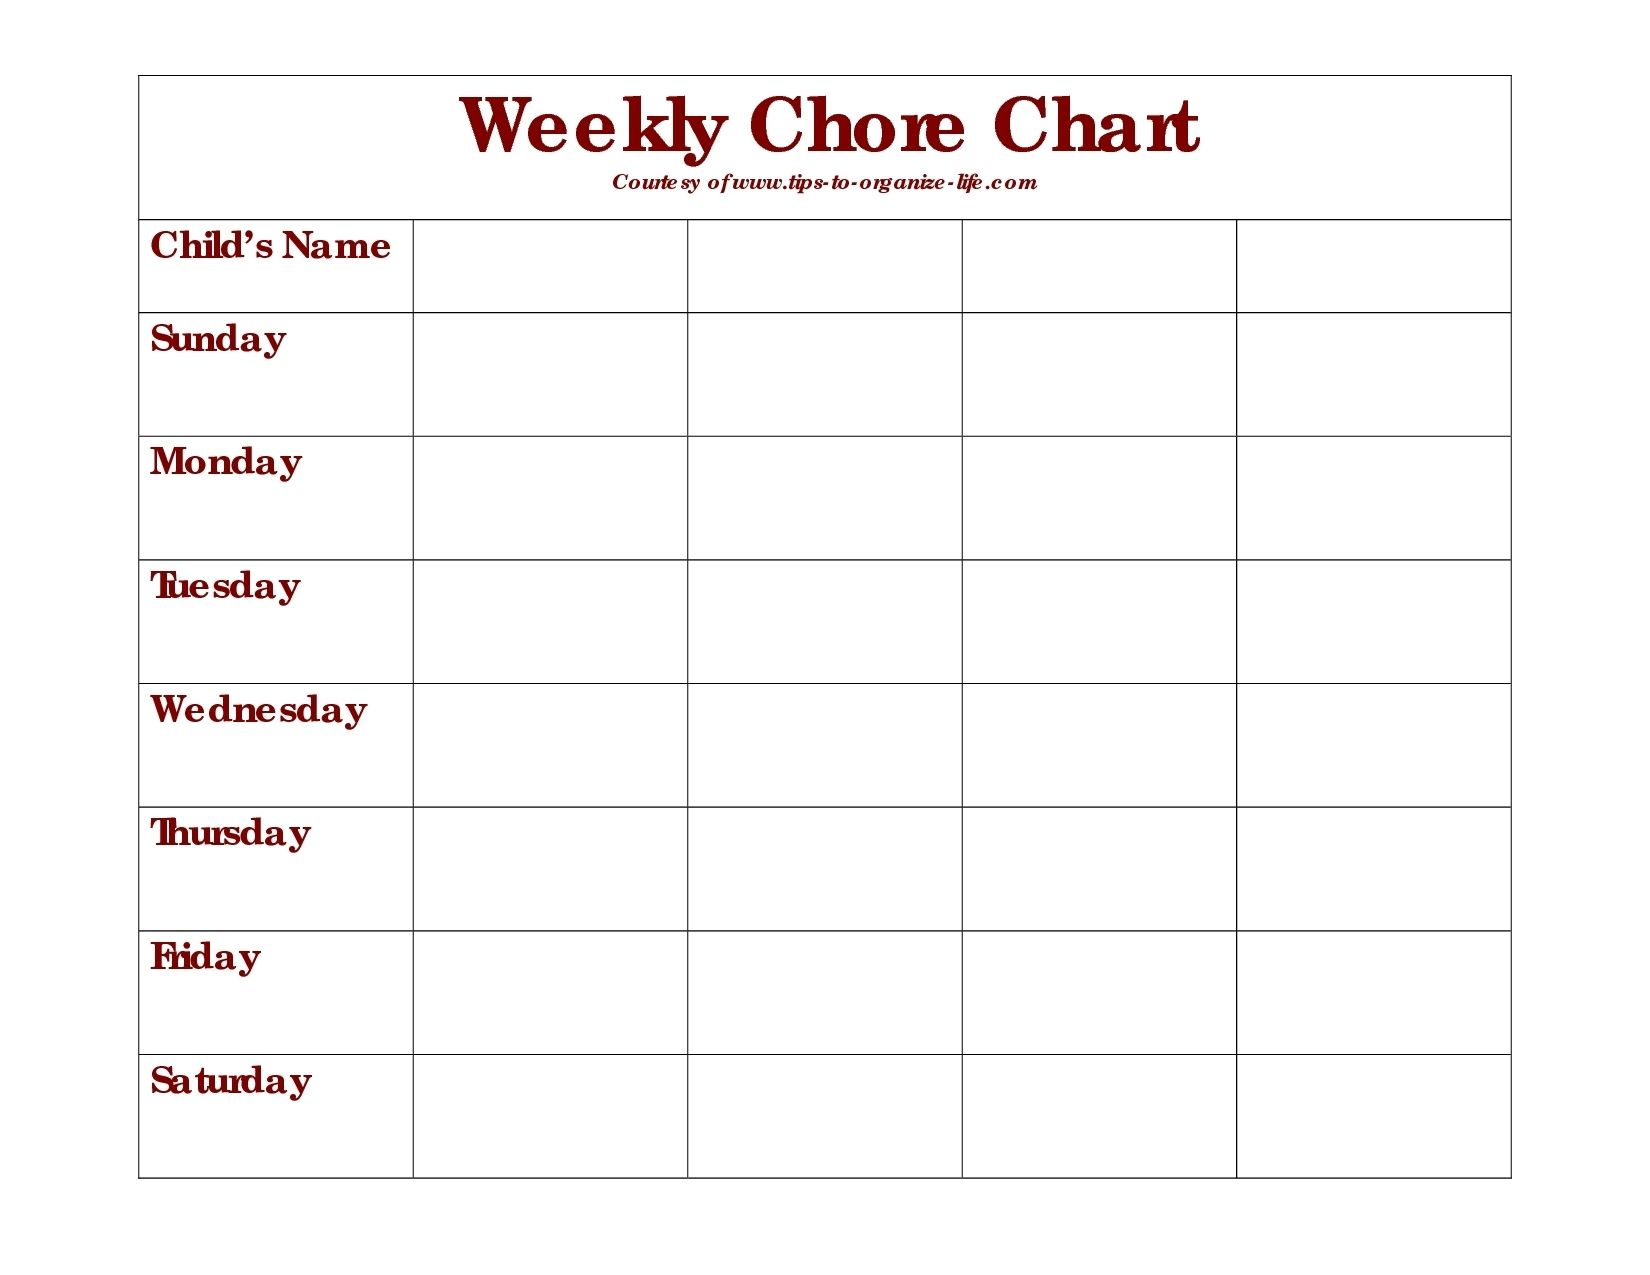 graphic regarding Blank Chore Charts Printable named Every day Chore Chart Printable - Ibov.jonathandedecker within just